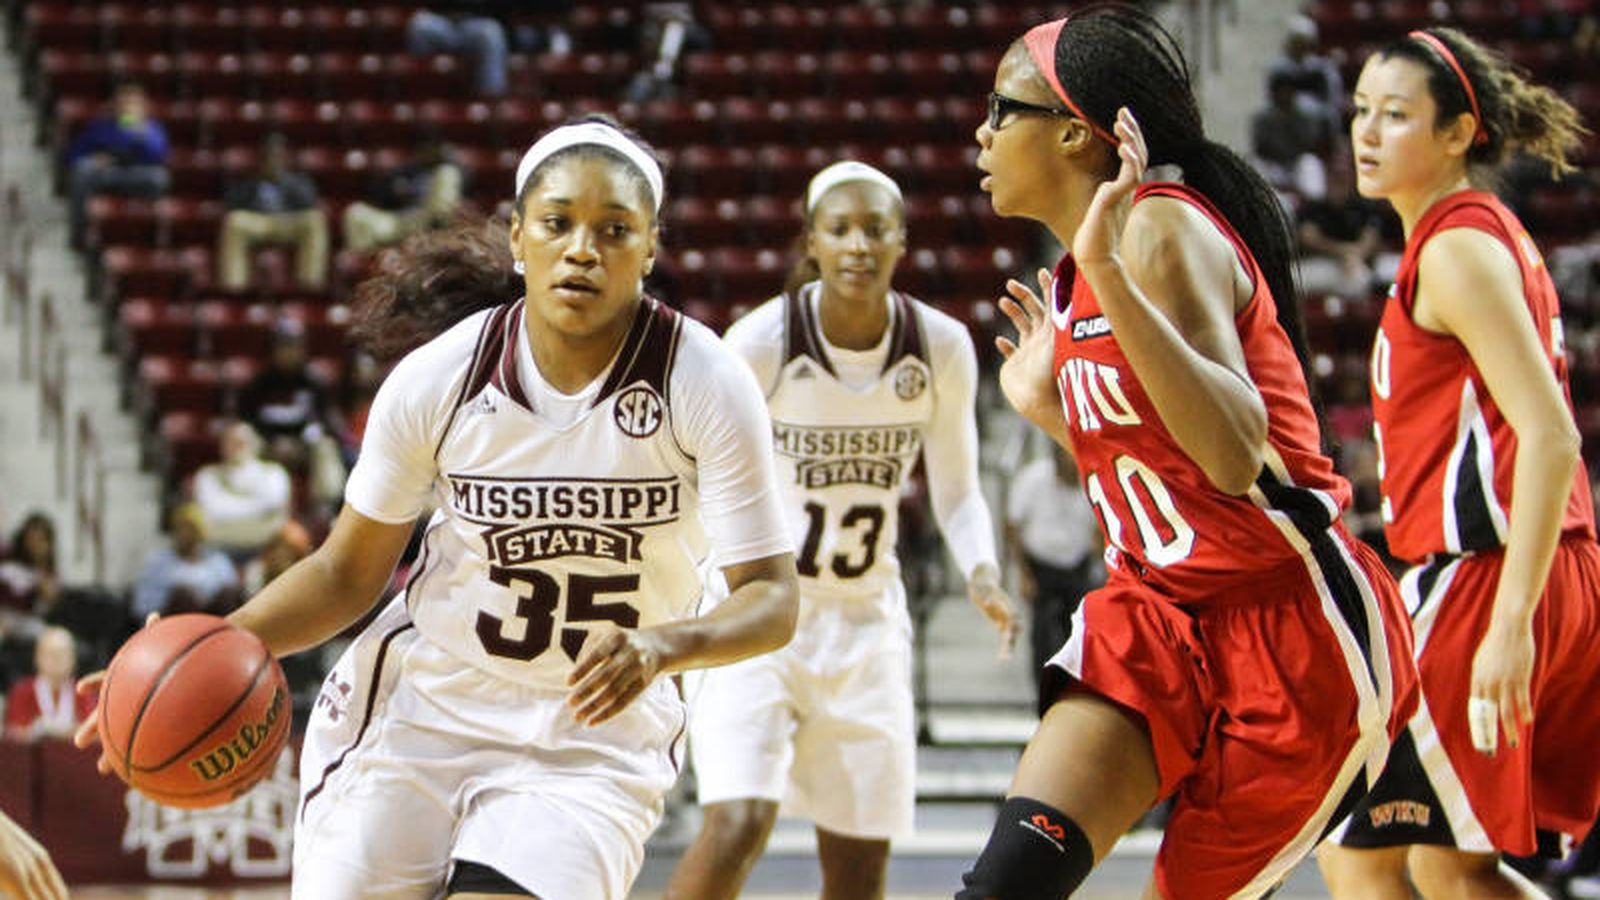 Kentucky Basketball Fox Named Sec Freshman Of The Week: Mississippi State Women's Basketball Ranked No. 25